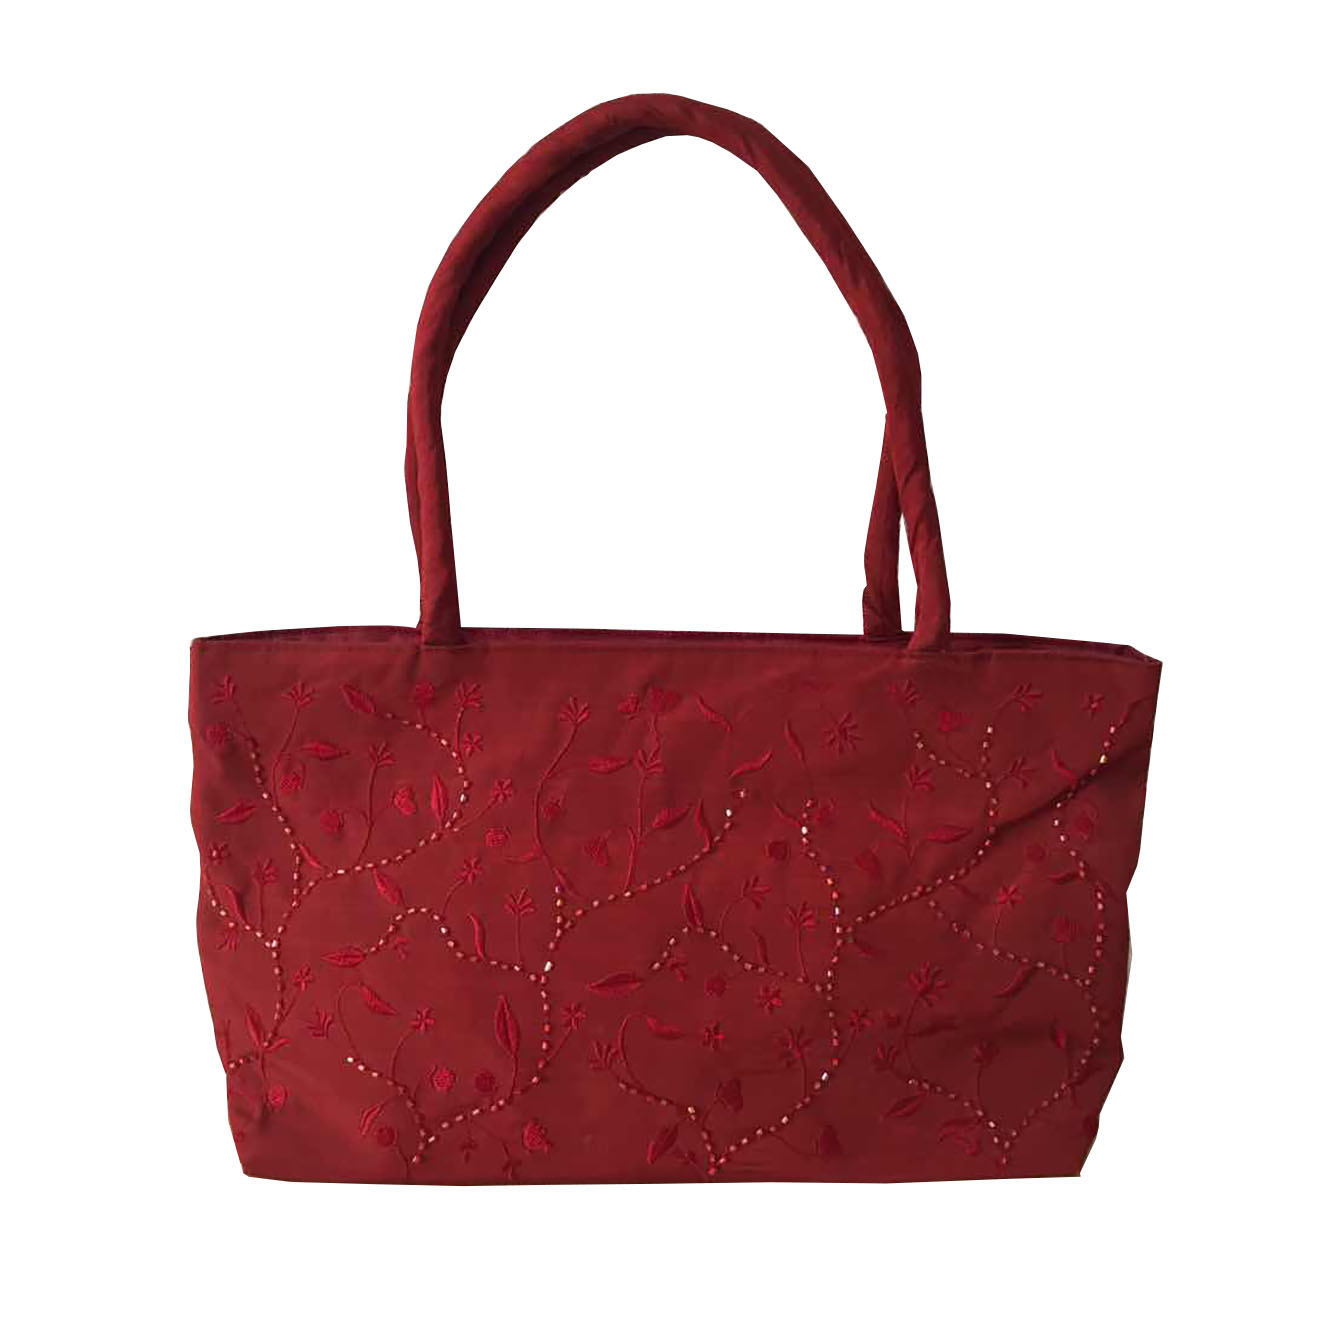 Garnet red taffeta silk shoulder bag